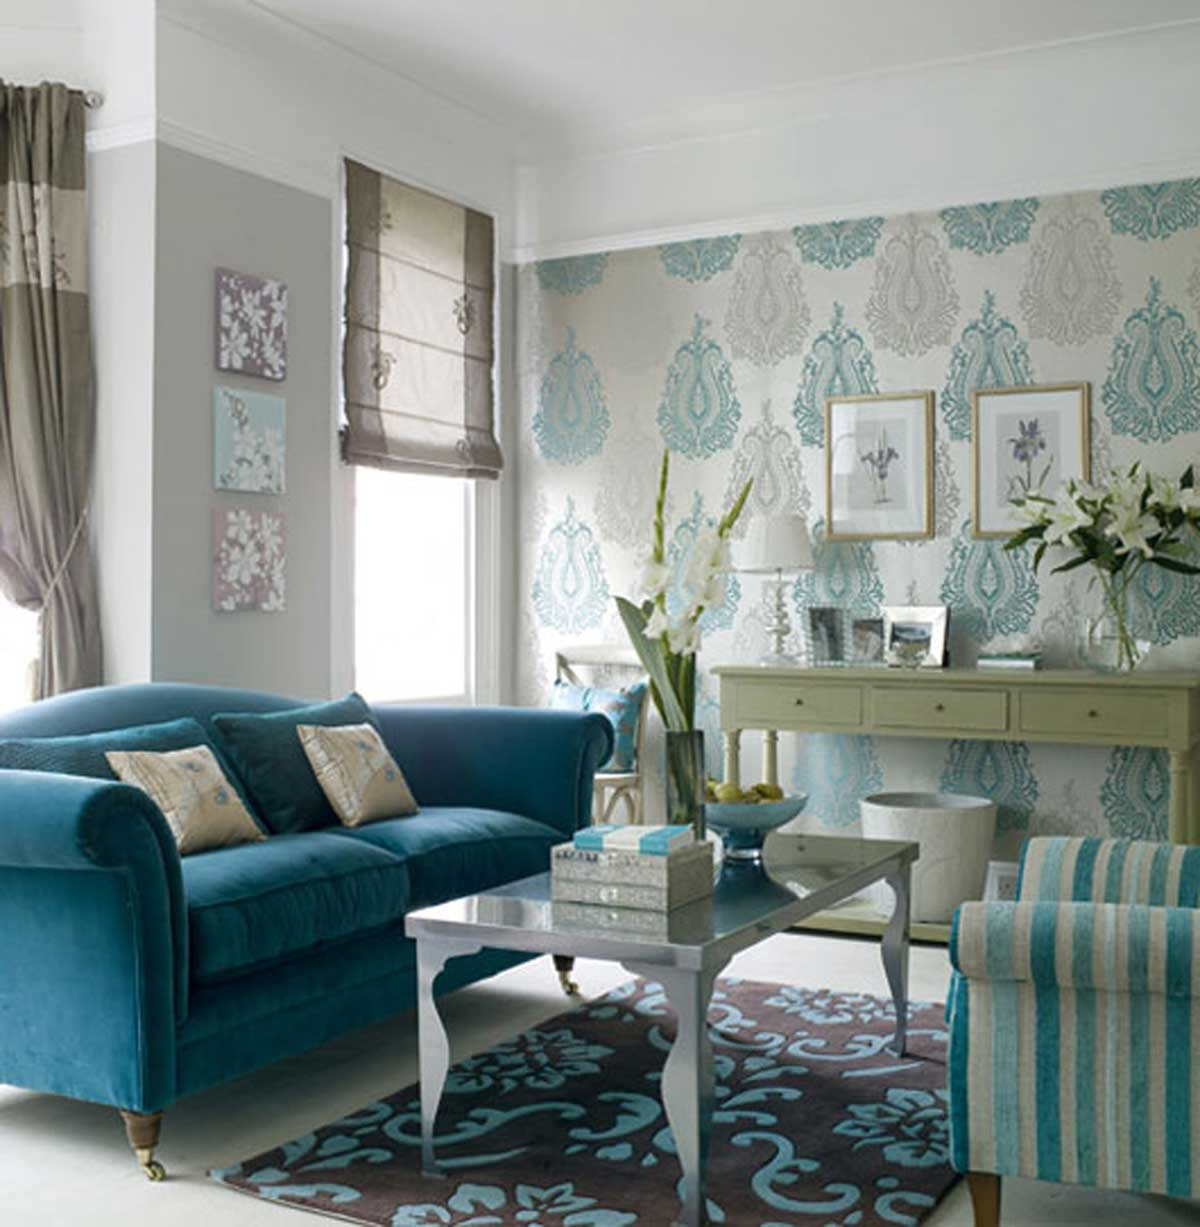 Decorative Room: Painter And Decorator In Watford & Hemel Hempstead Watford